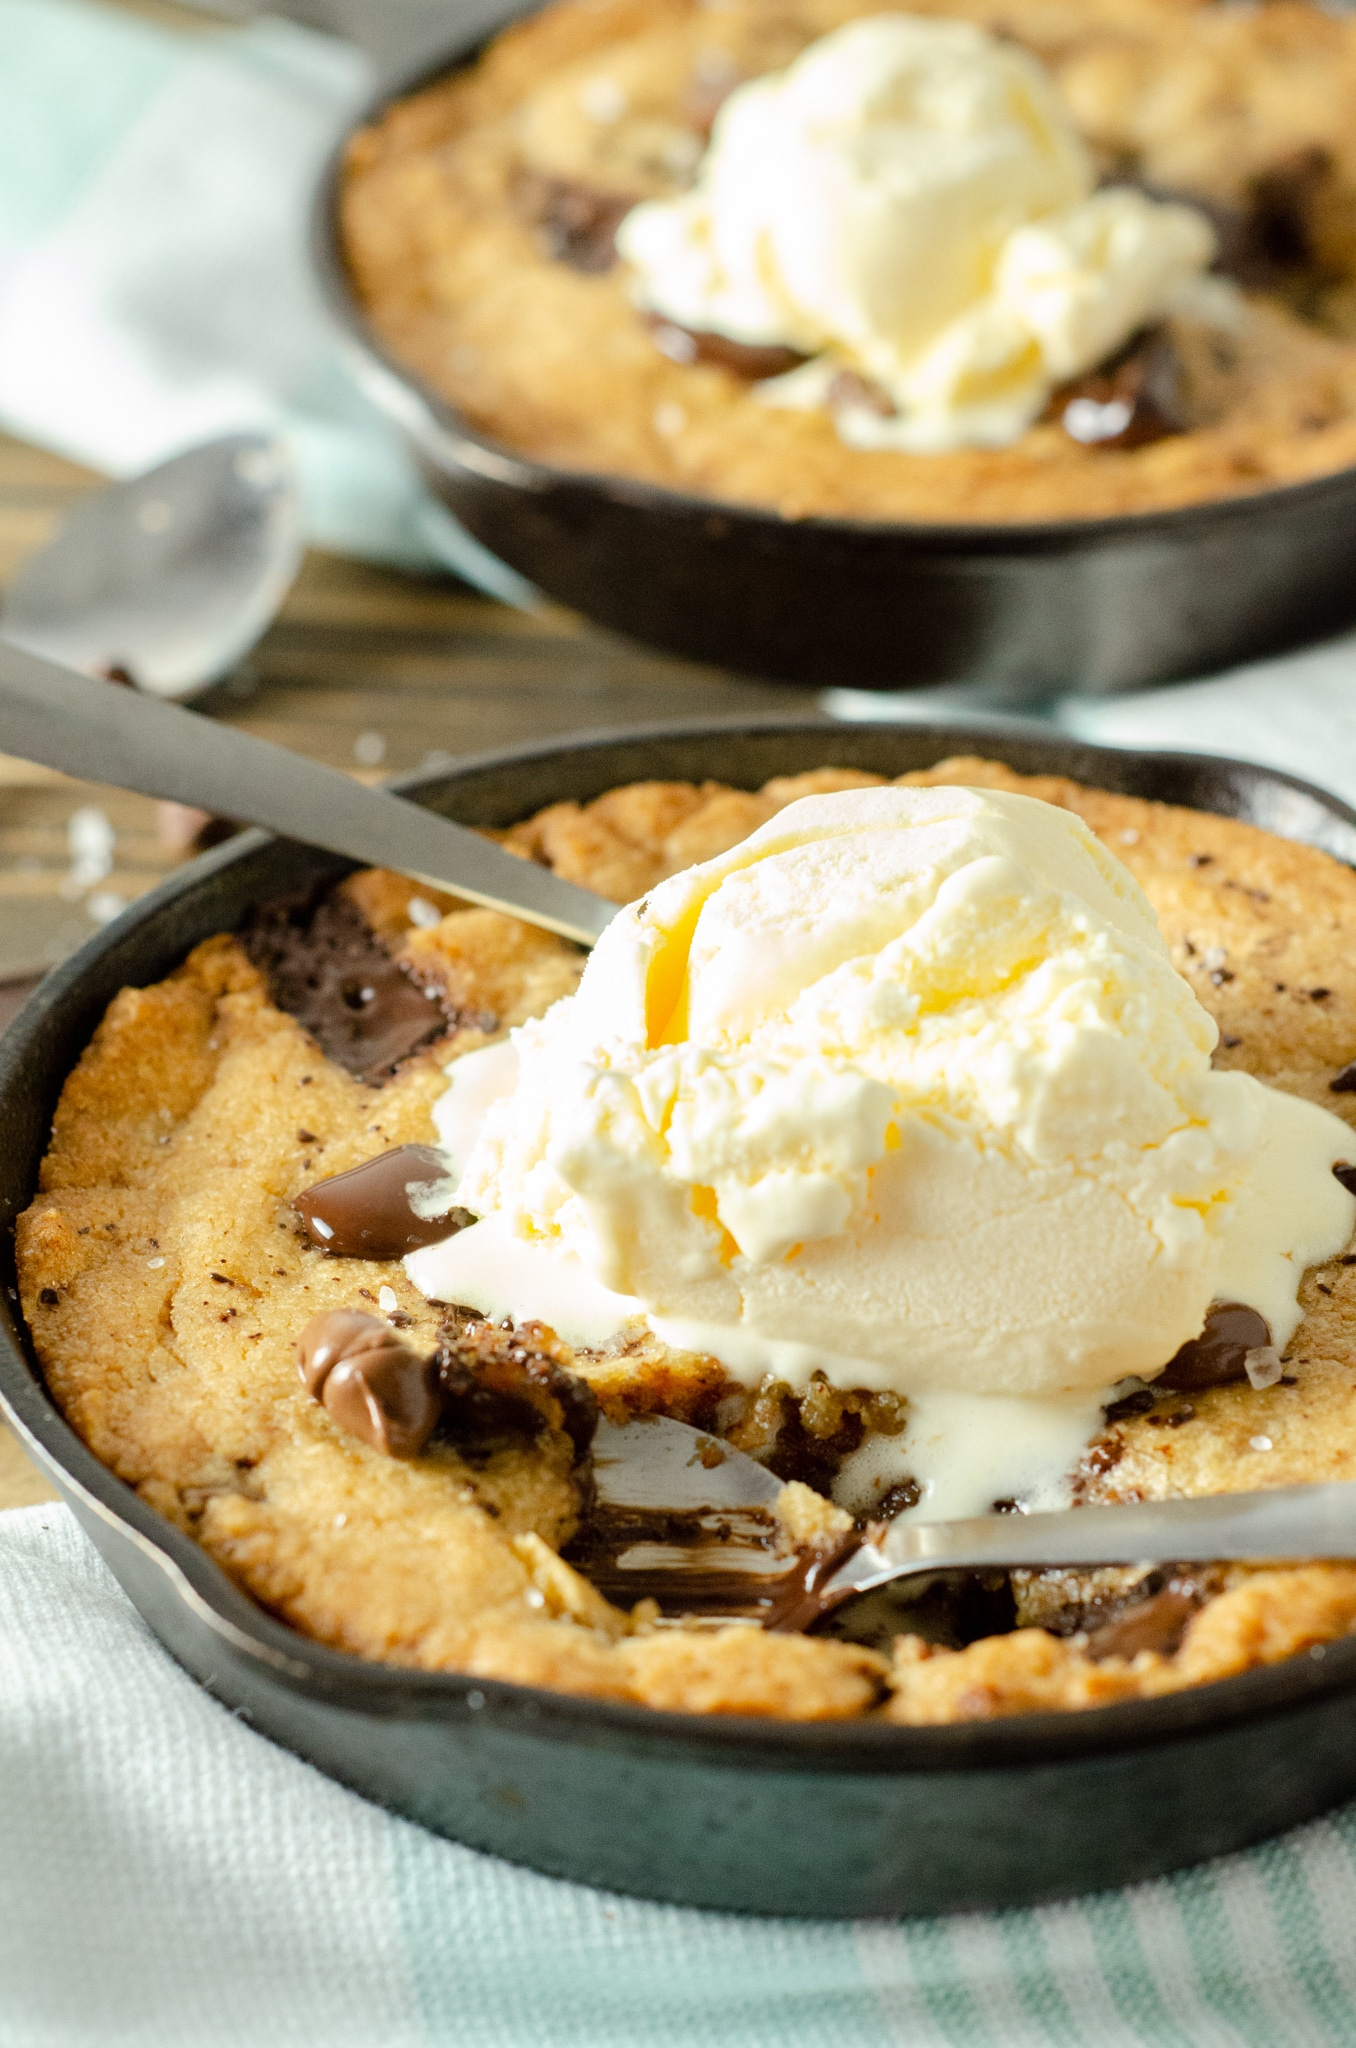 Chocolate Chip Skillet Cookie Ice Cream. This brown butter Chocolate Chip Skillet Cookie is packed with chunks of chocolate and topped with sea salt, it's the perfect dessert for two. The insanely soft center and crispy buttery edges will have you falling in love with this easy pizookie recipe.